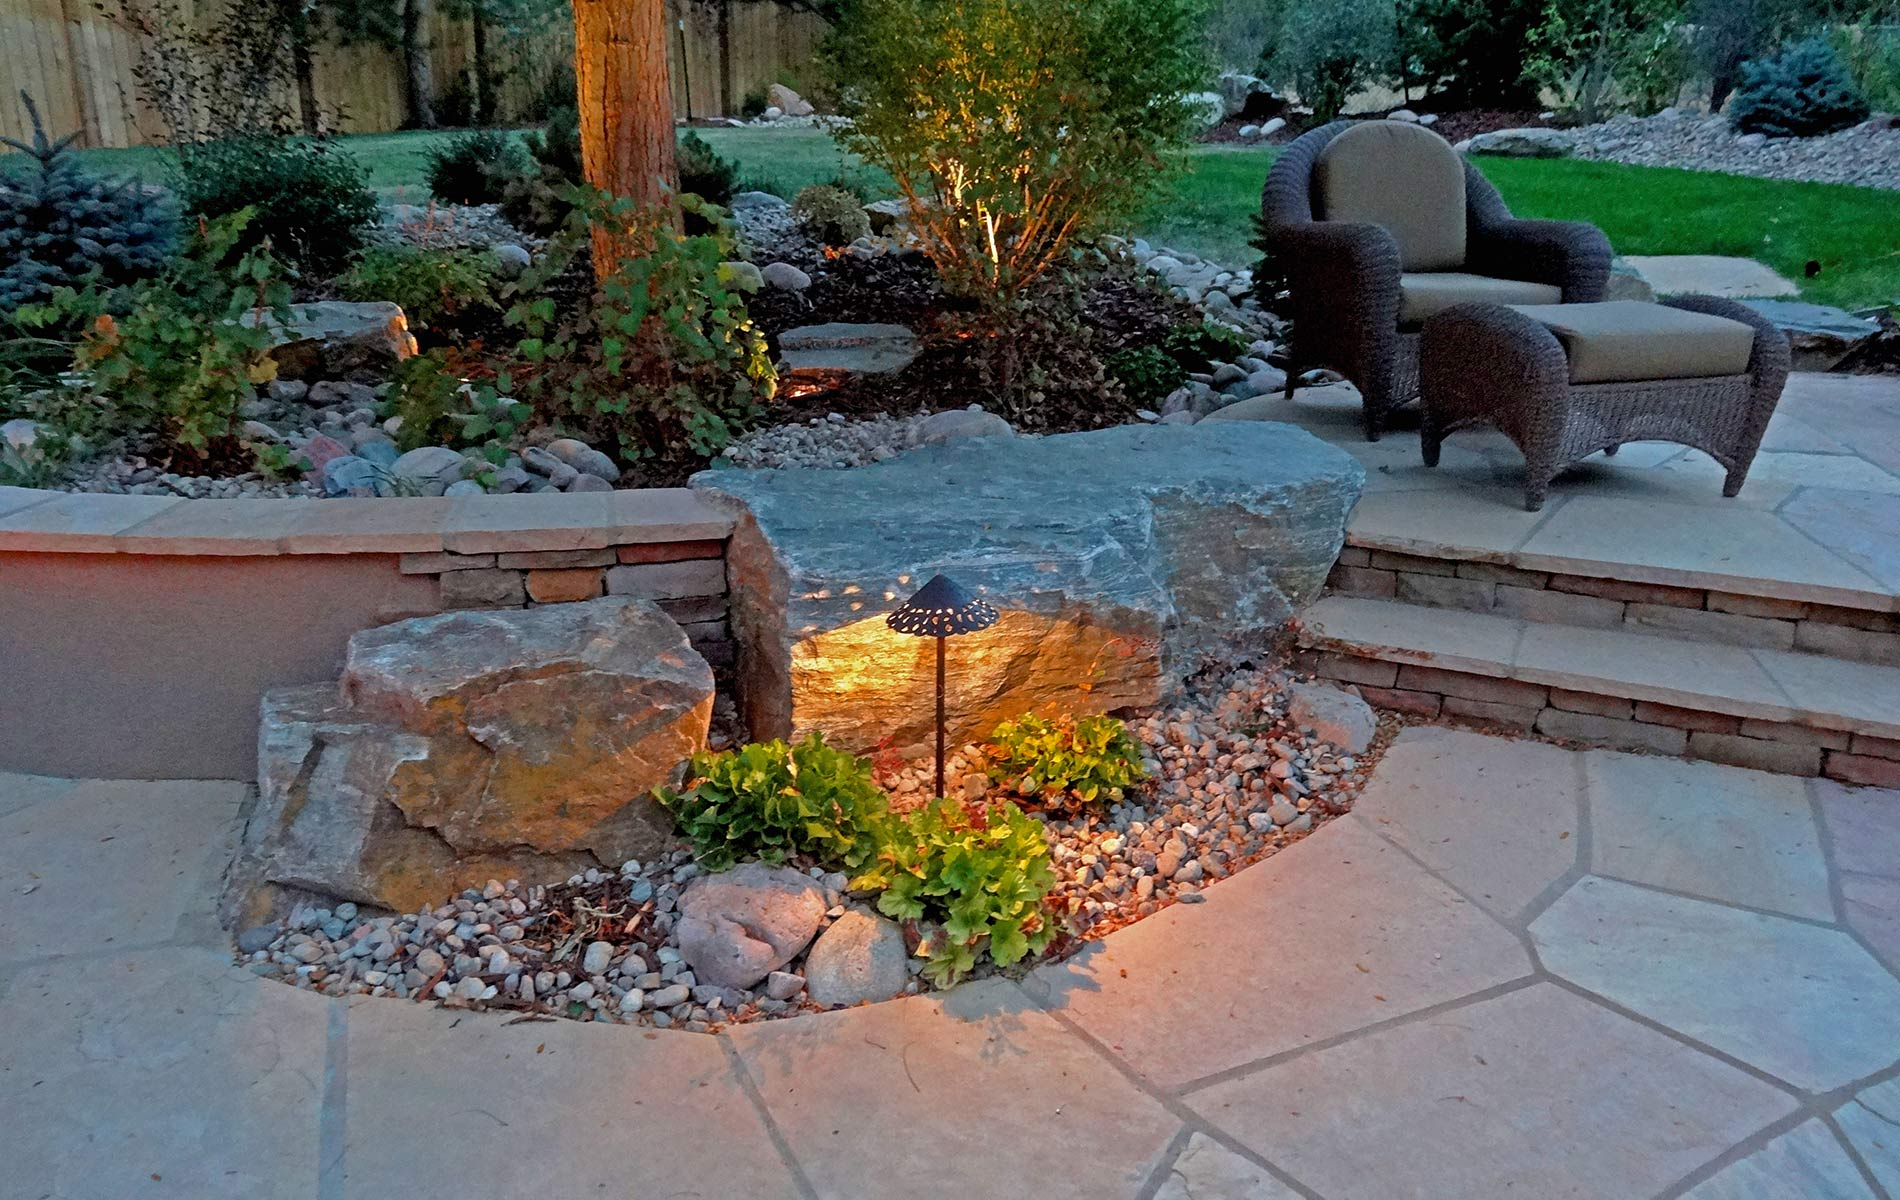 12 volt Accent lighting against gold ore accent boulder